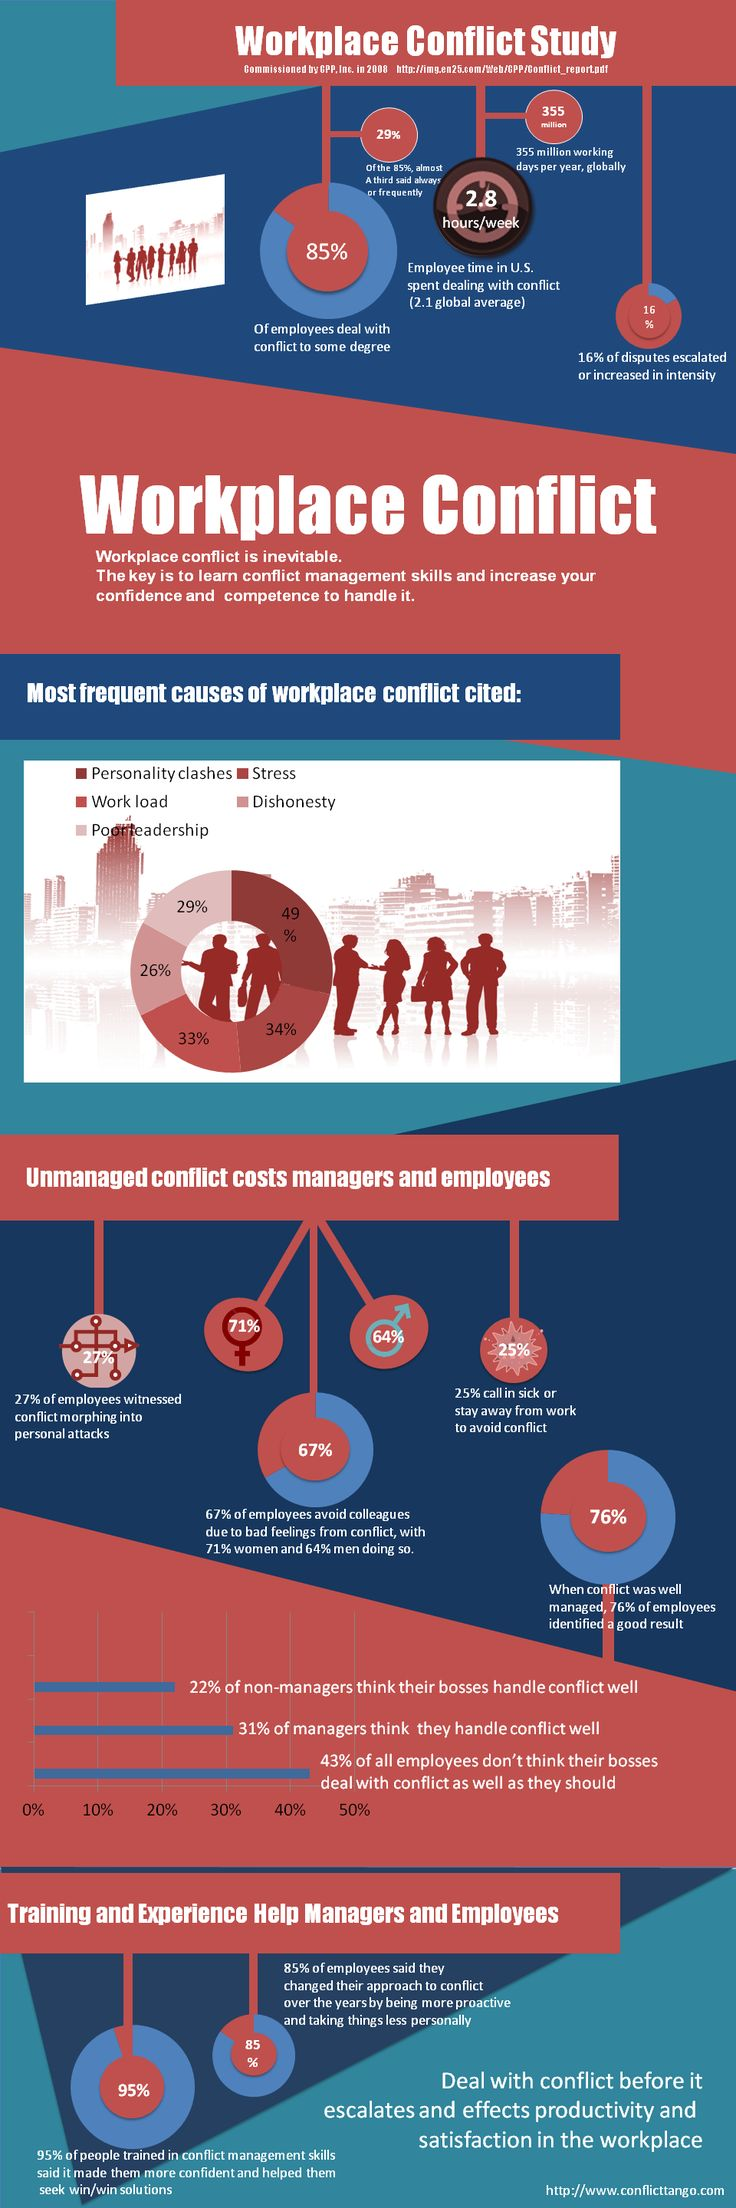 effects of conflict on productivity Conflict in an organization affects more than just the workers who can't agree everybody in the workplace feels the effects of workplace conflict settling claims to avoid costly litigation can take a significant portion of the organization's profits the distraction and loss of productivity on the part of.